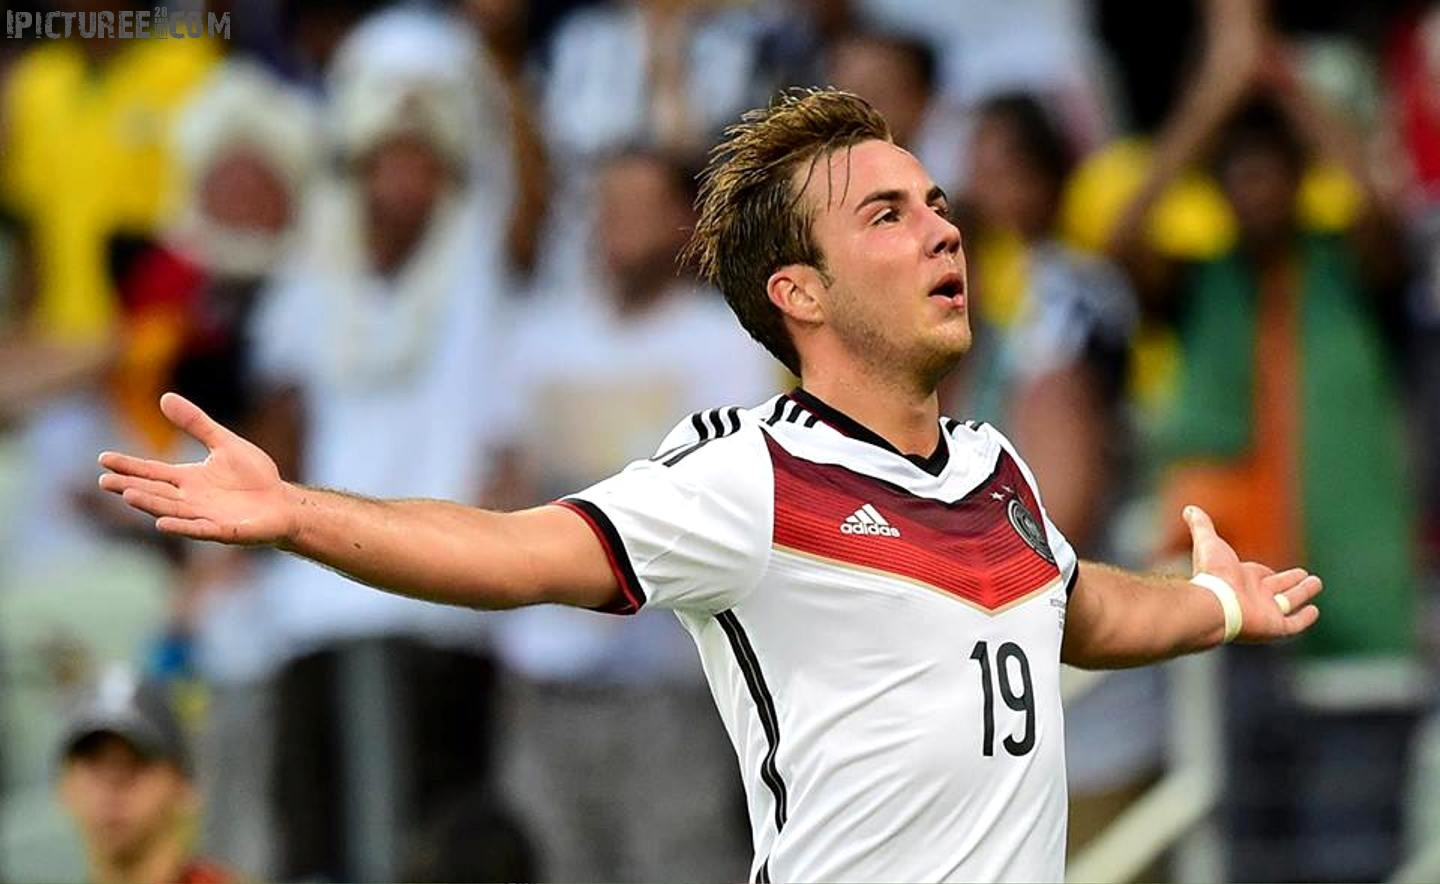 Mario Gotze Germany Celebrates Goal at World Cup 2014